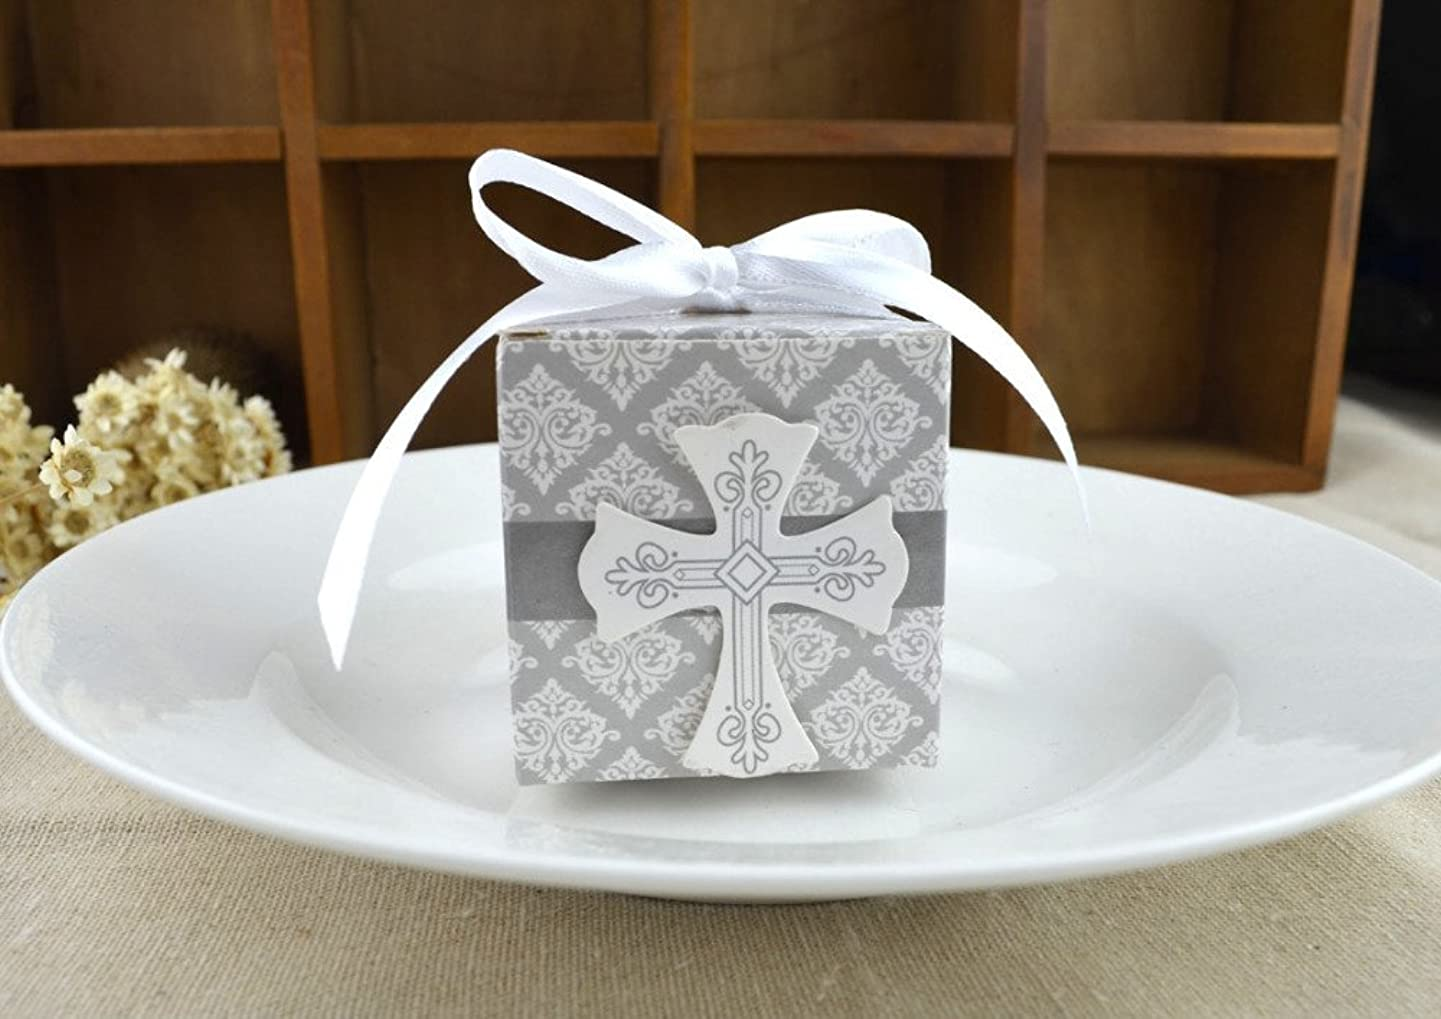 50pcs First Communion favor cross candy box Christening baby shower wedding party bomboniere wrap holders with ribbons